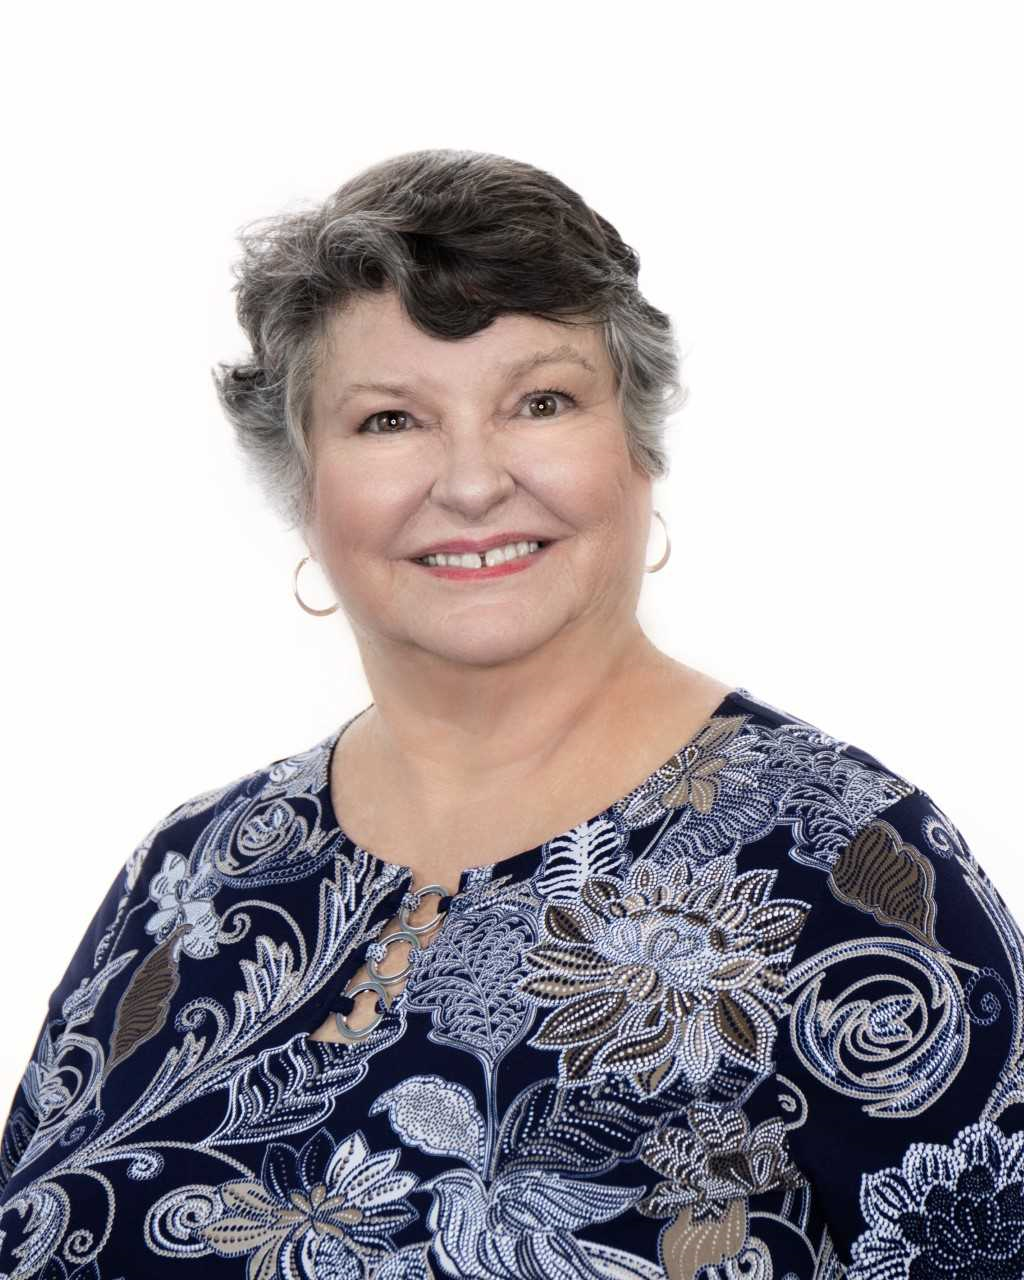 https://d141cscbo5t2xj.cloudfront.net/sites/1256/marge-bennett-remax-realty-group-fort-myers-fl-real-estate-2018-head-shot.png